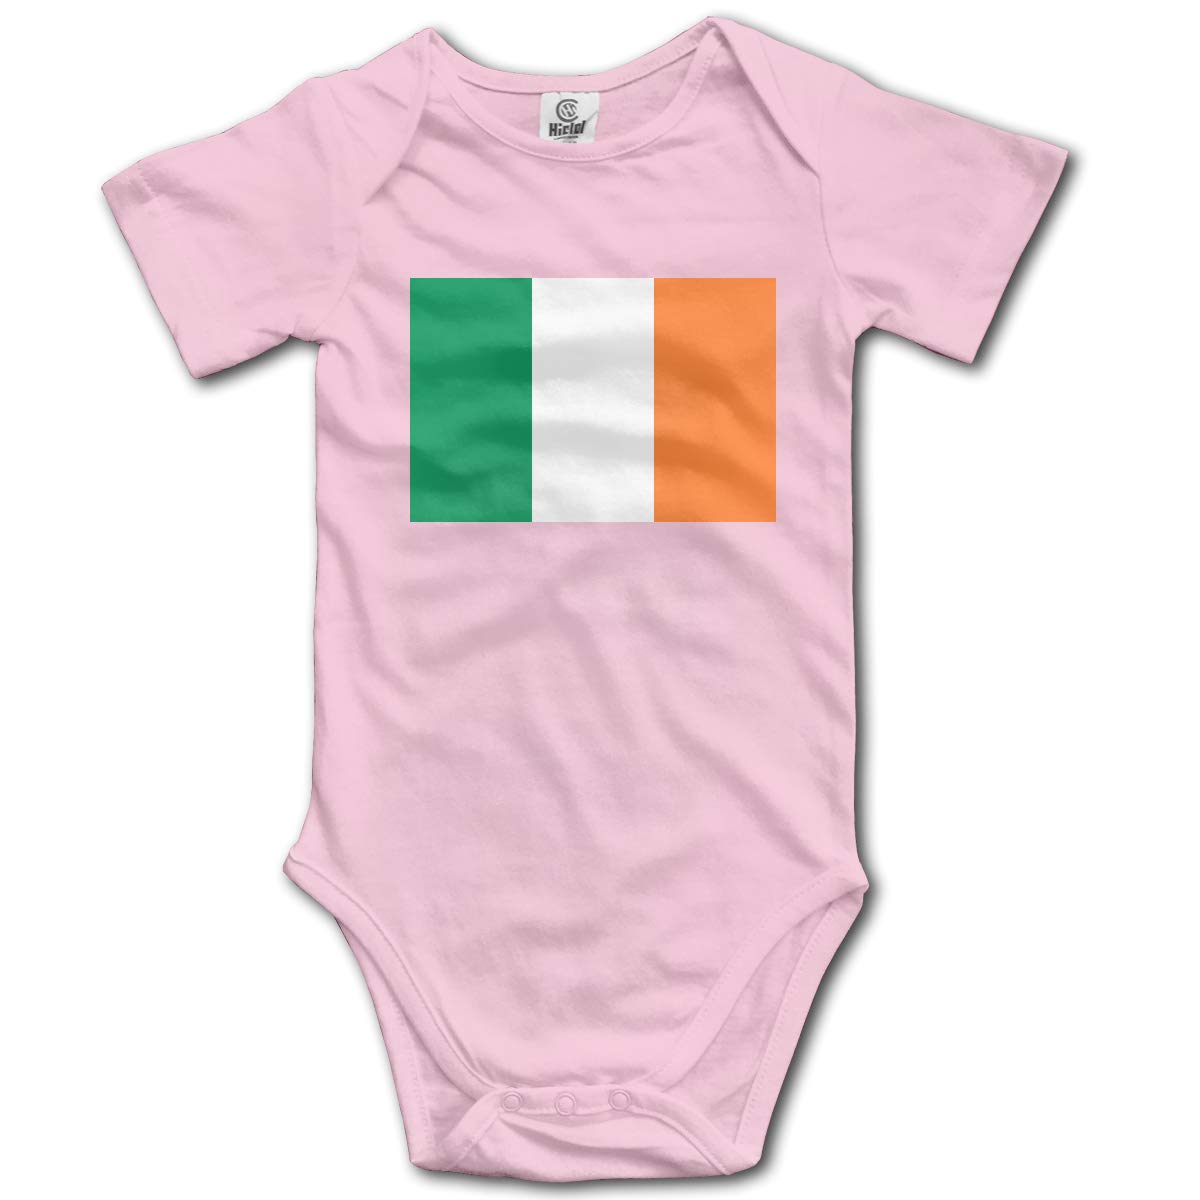 CUTEDWARF Baby Short-Sleeve Onesies Flag of Ireland Bodysuit Baby Outfits